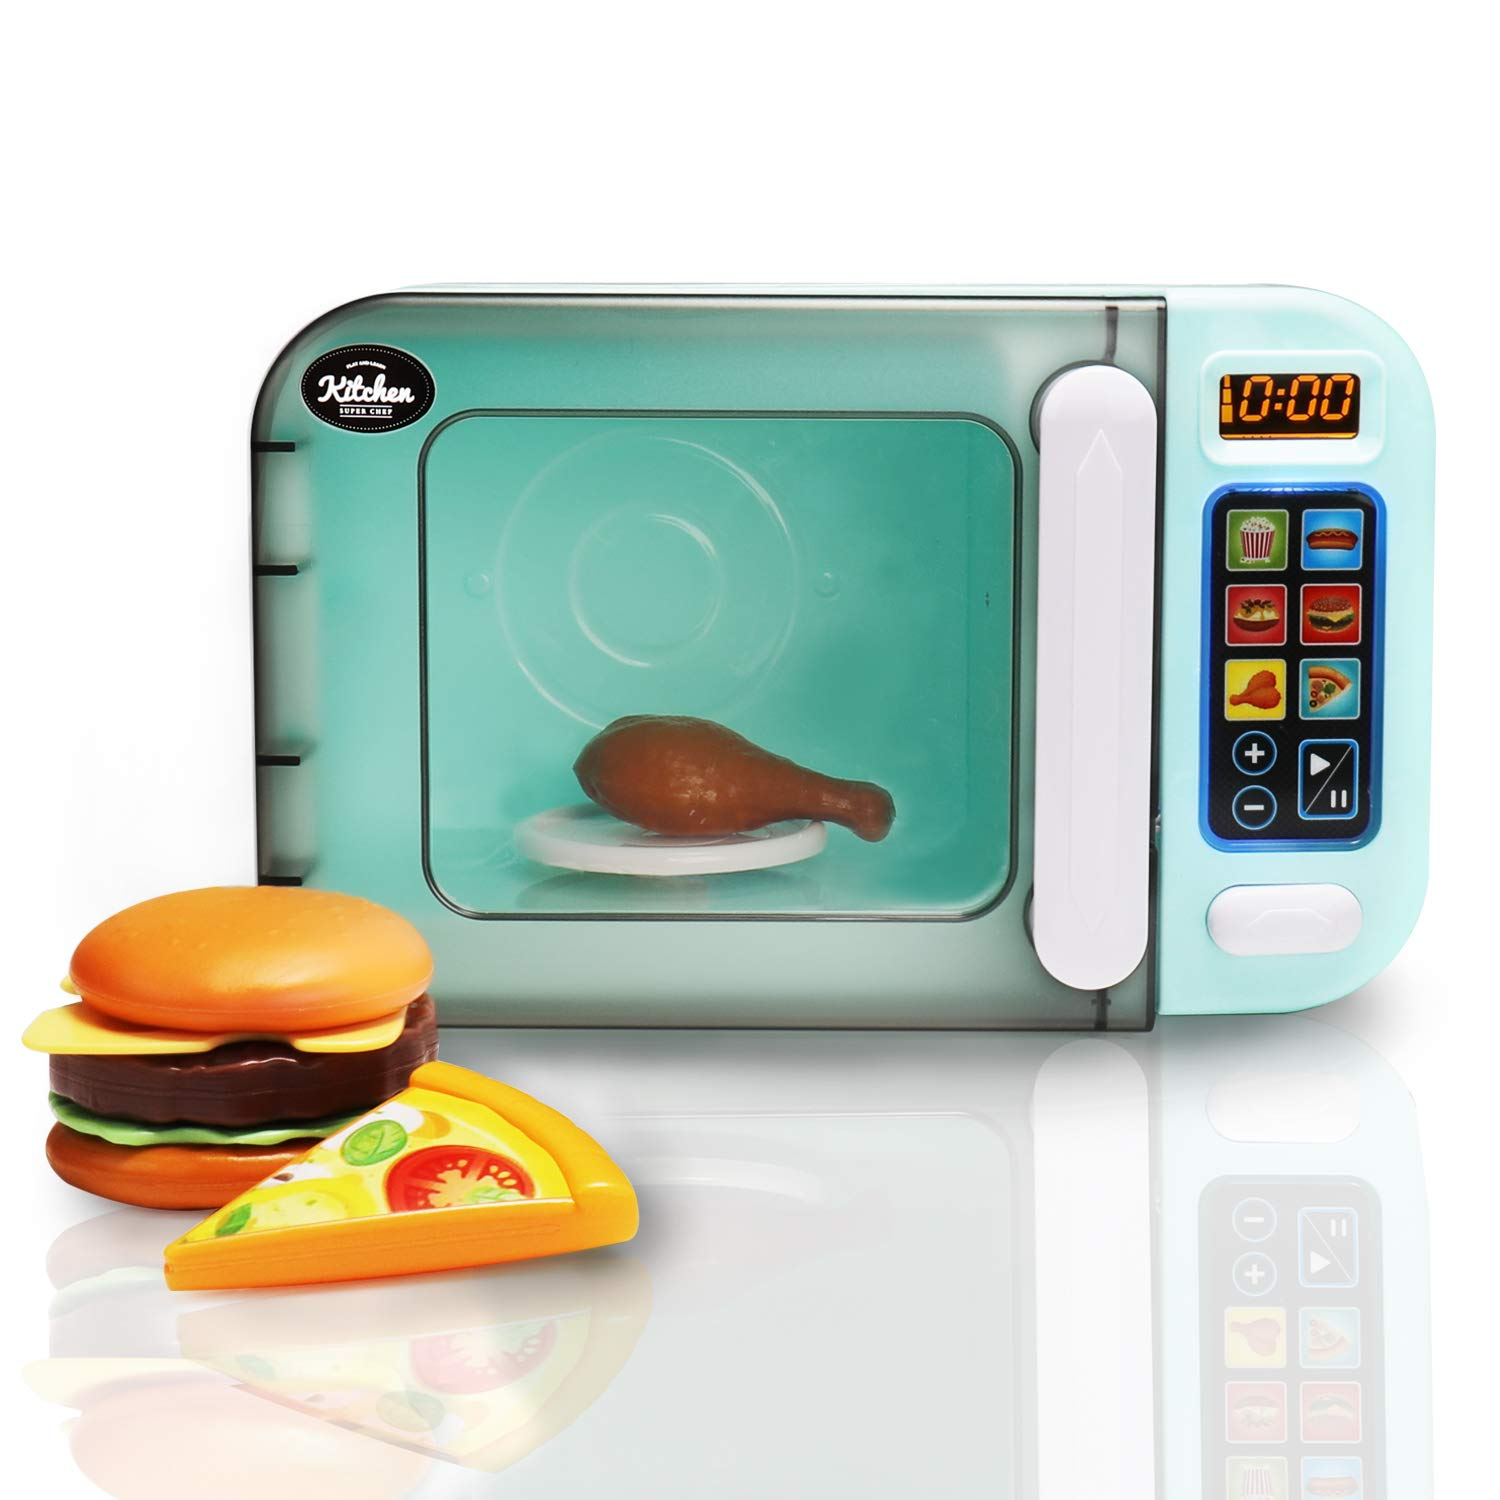 infunbebe Jeeves Jr. Kids Microwave Oven Toy Electronic Pretend Microwave Play Just Like Home My First Kitchen Appliance for Toddlers by infunbebe